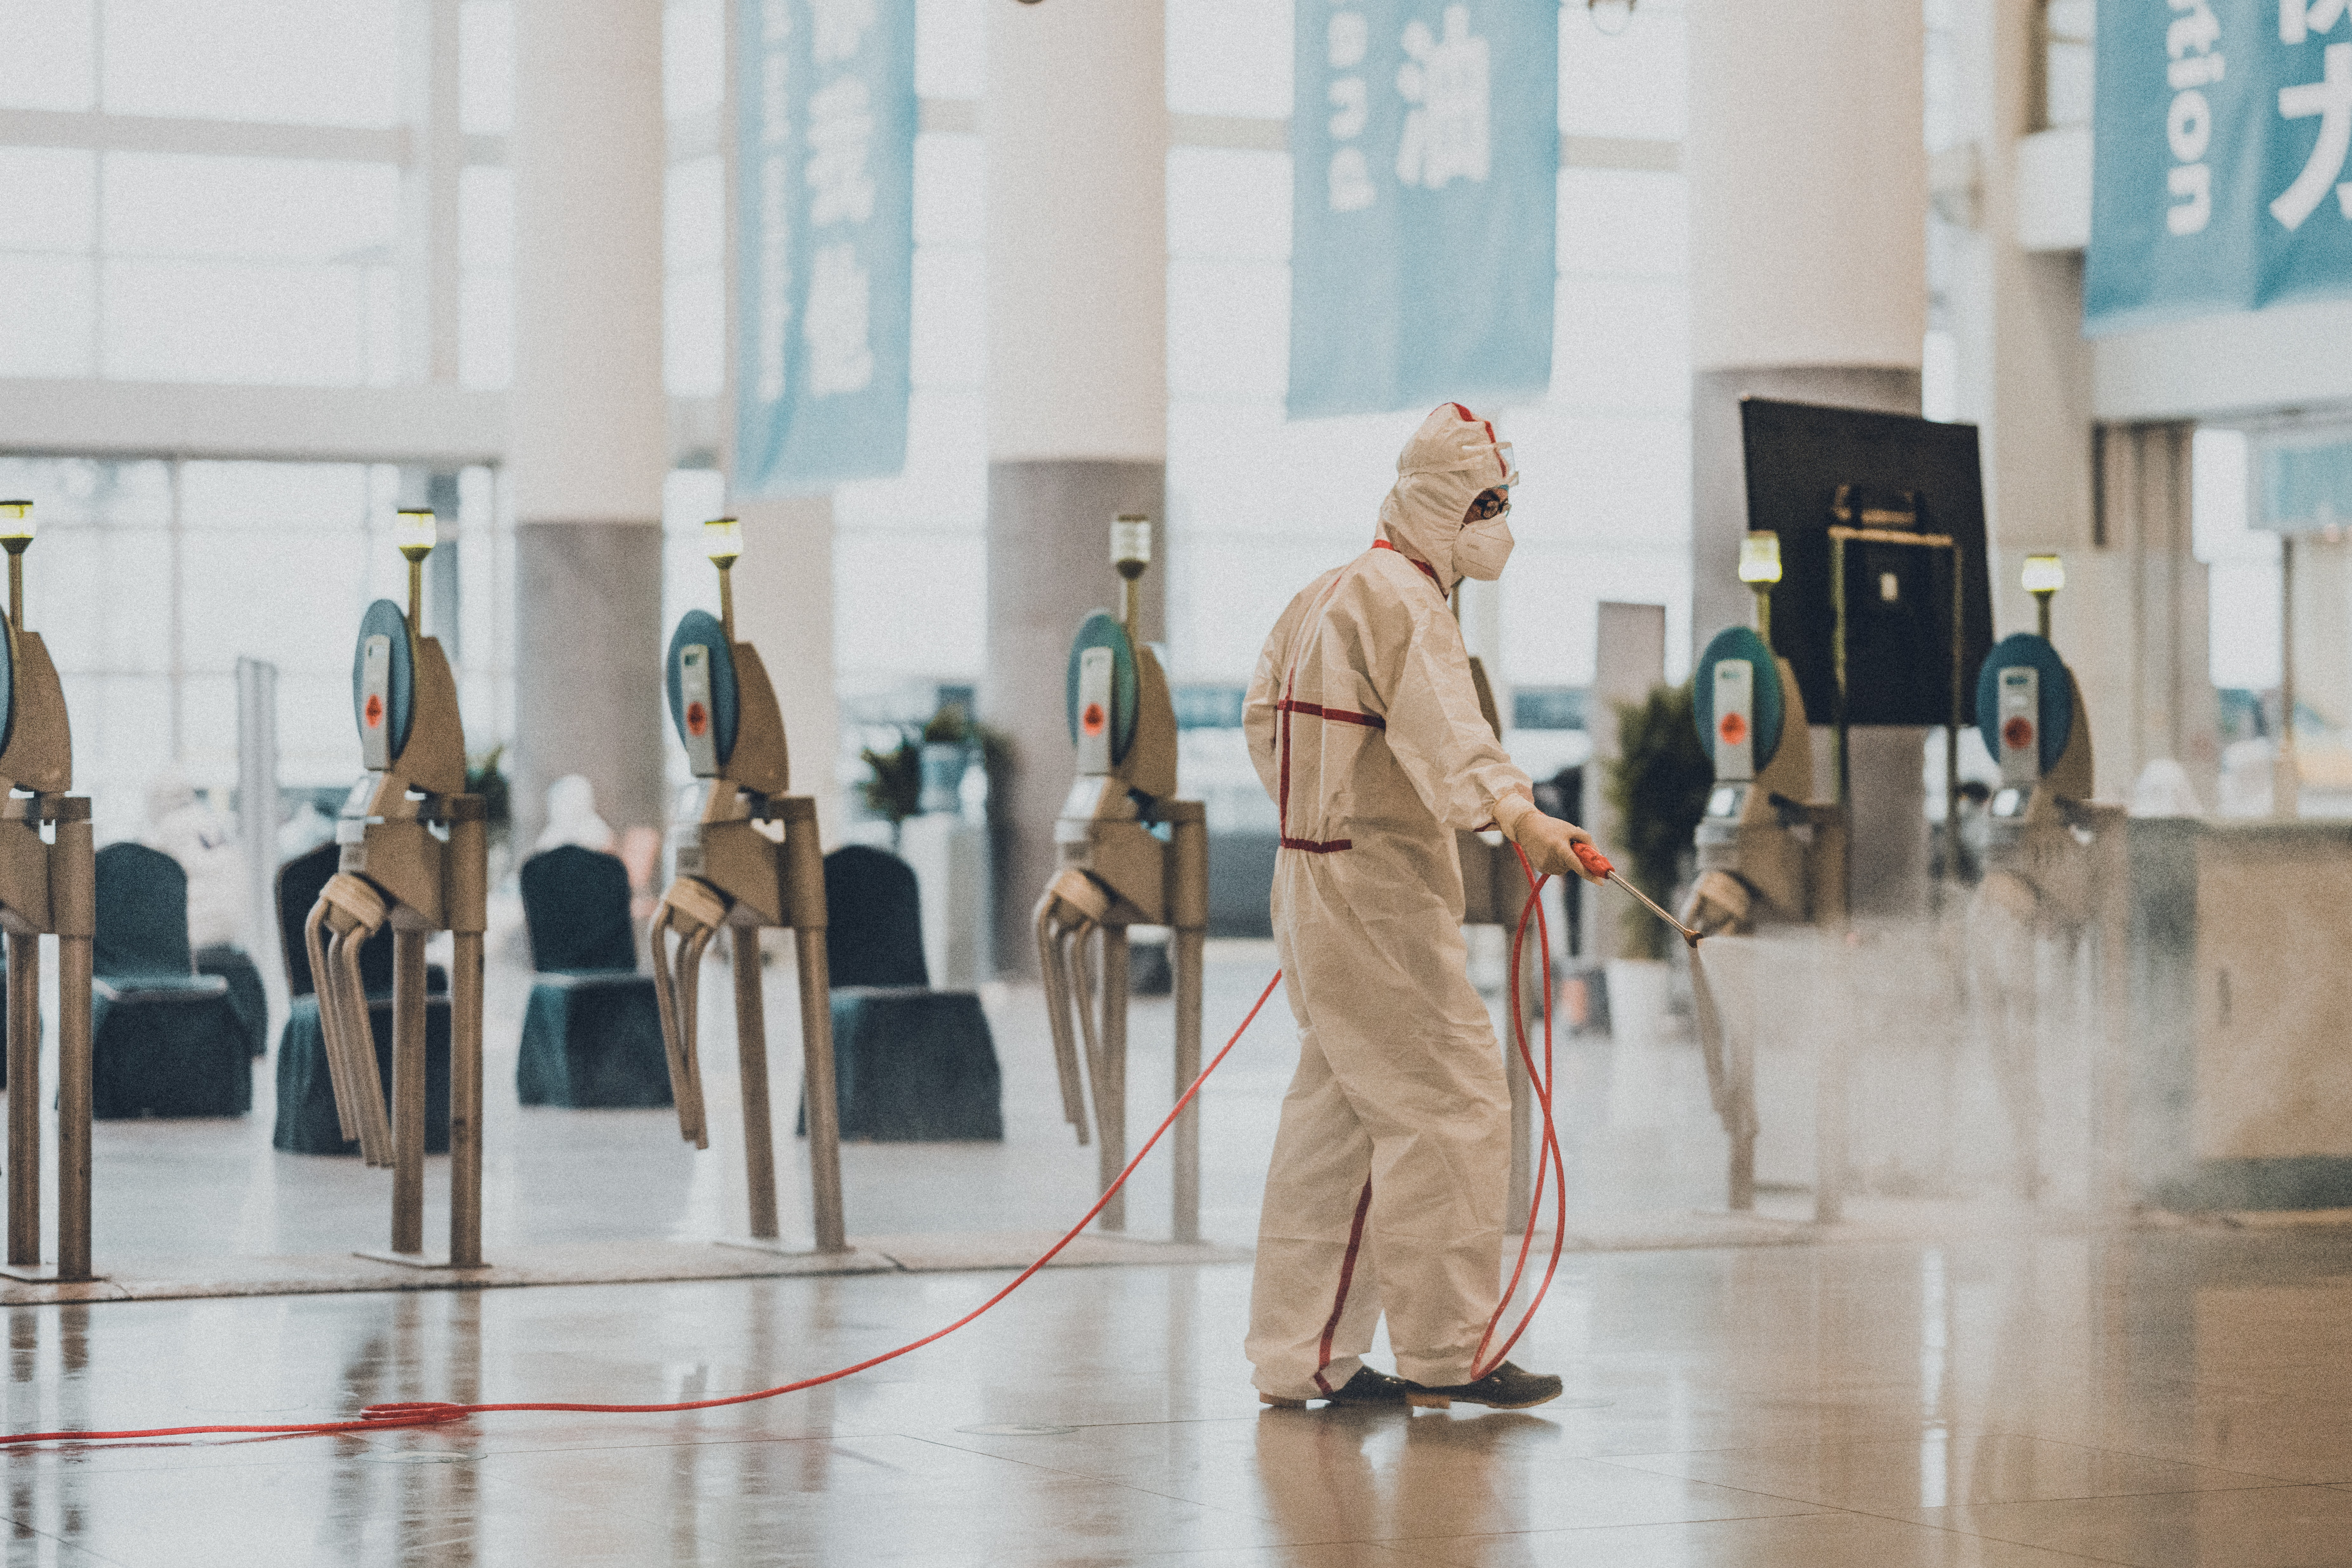 A worker in a hazmat suit using a disinfectant sprayer in an airport